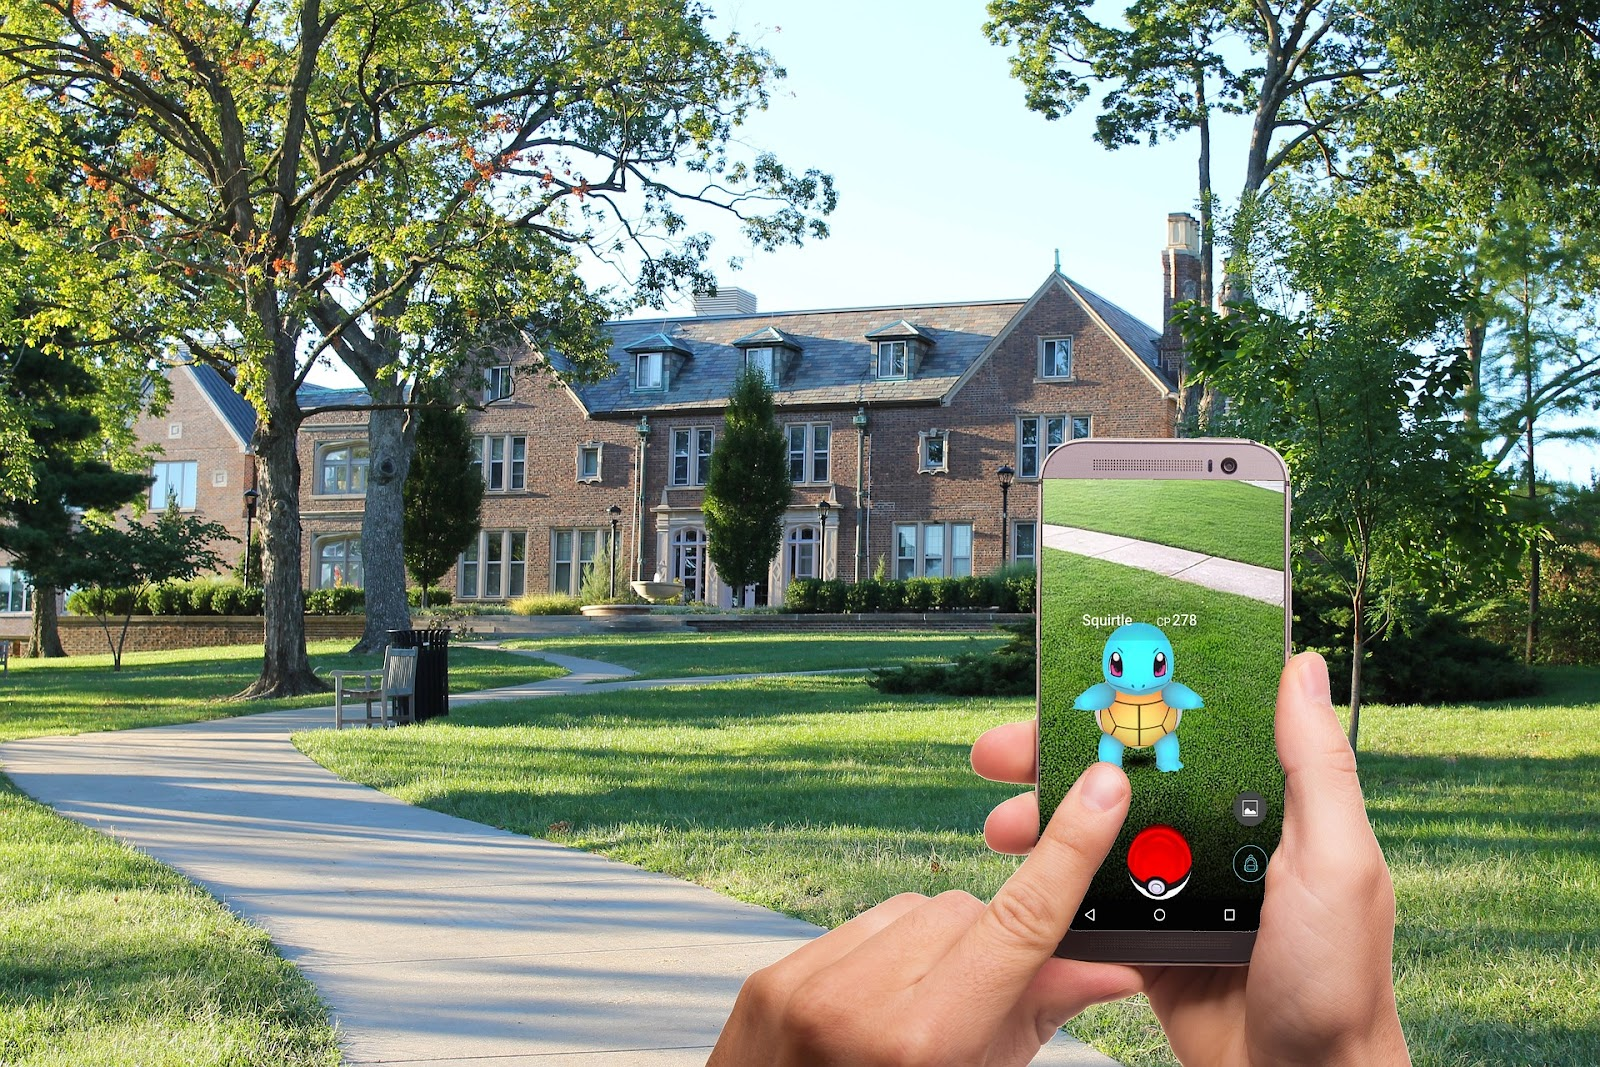 hands of a person using a smartphone to play Pokémon GO in an upscale neighborhood